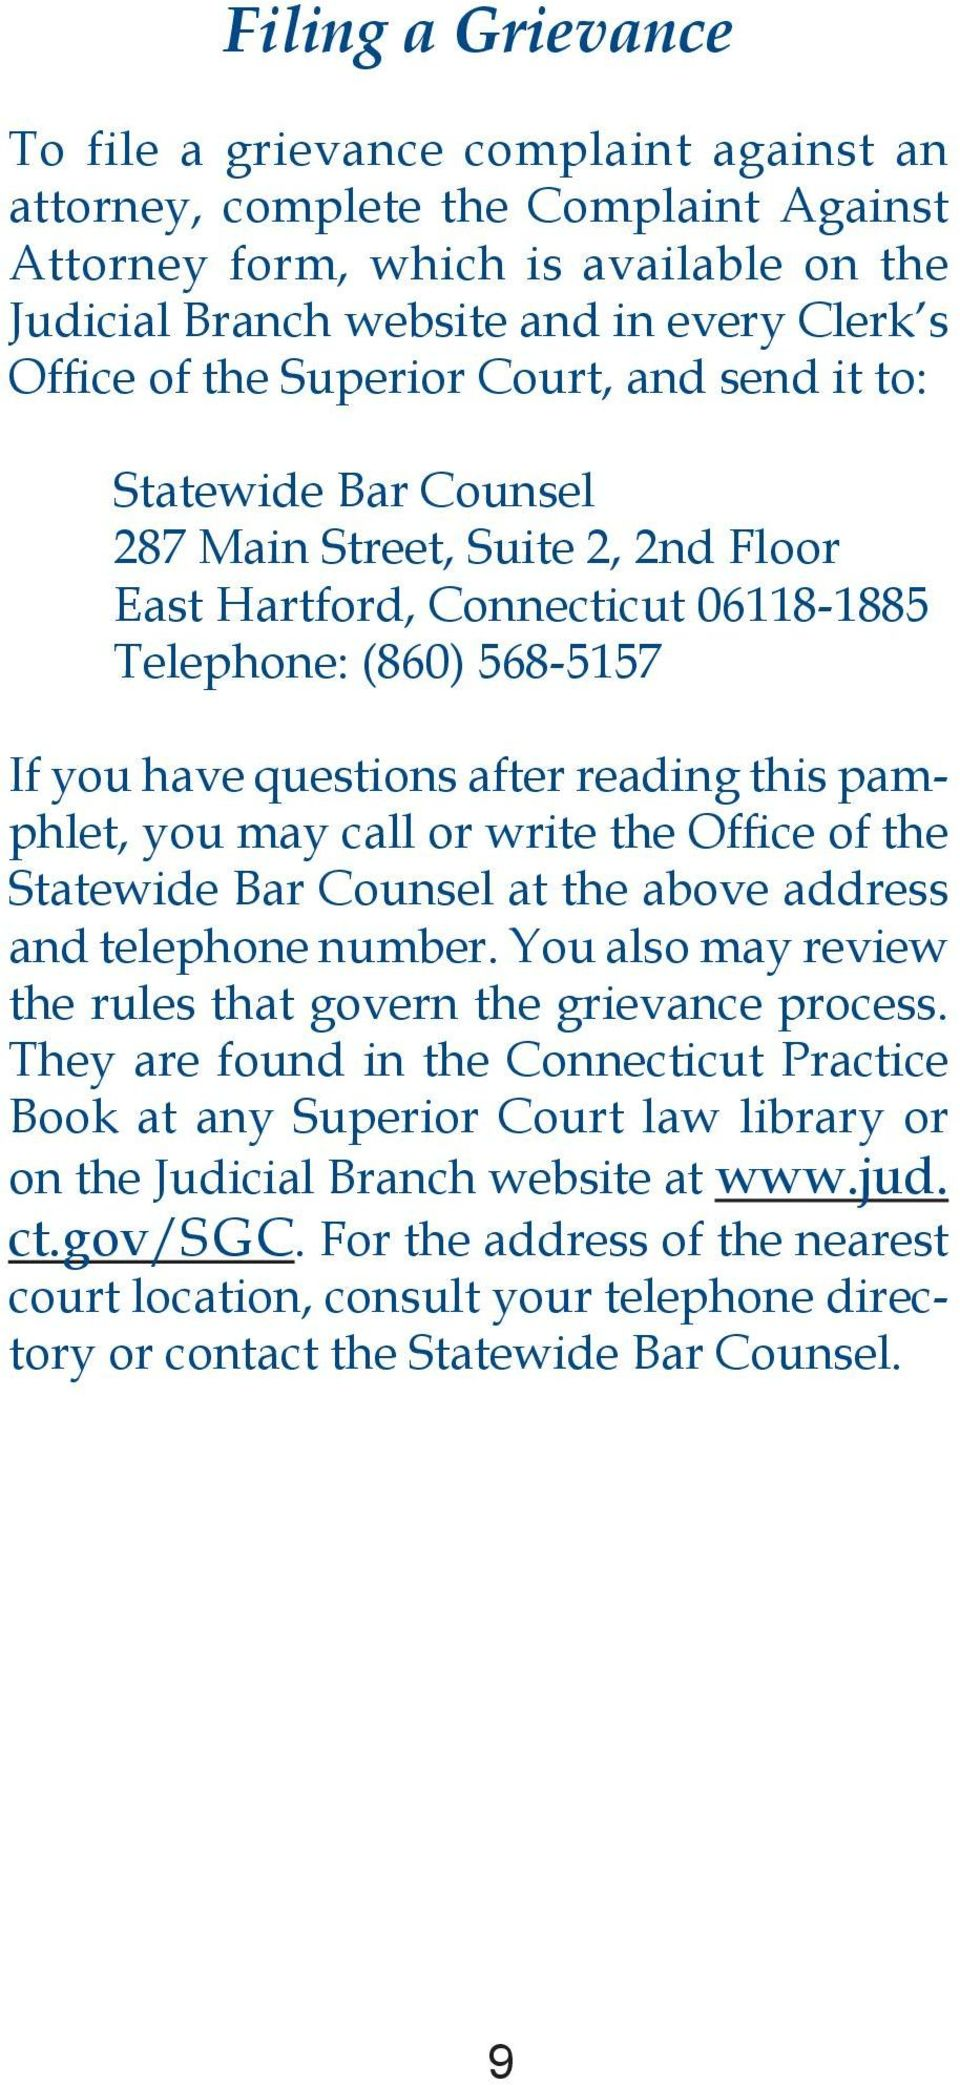 pamphlet, you may call or write the Office of the Statewide Bar Counsel at the above address and telephone number. You also may review the rules that govern the grievance process.